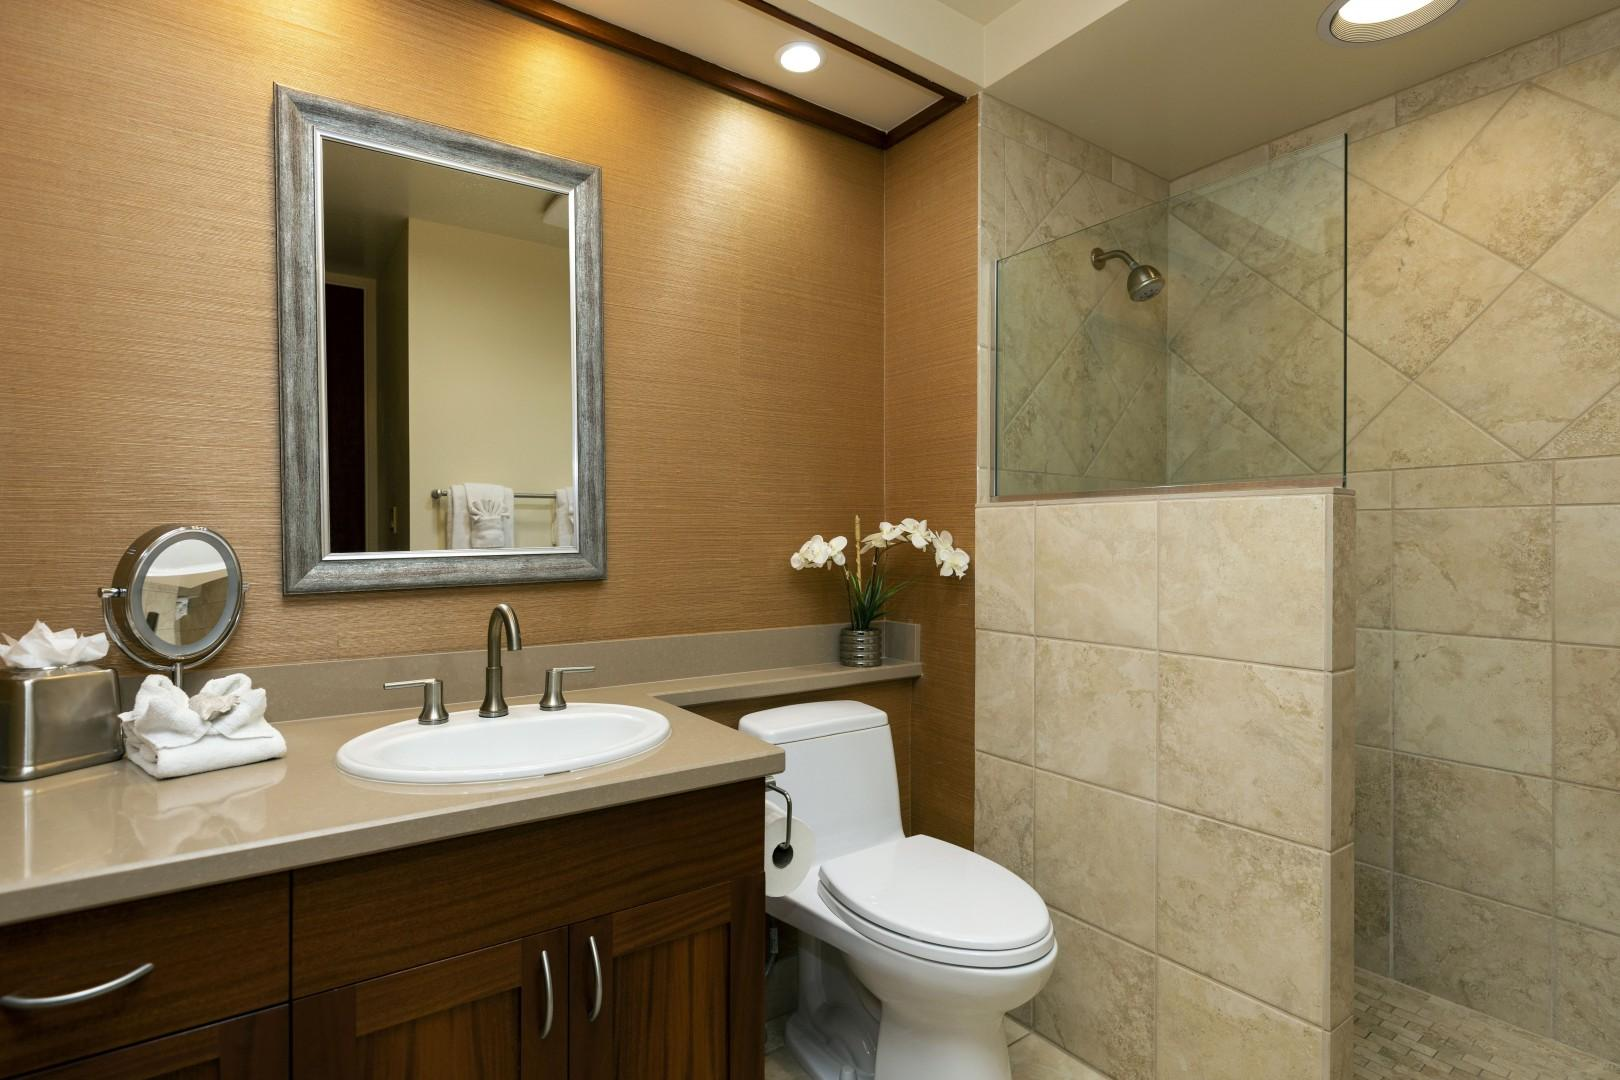 The guest bathroom offers a walk-in shower.